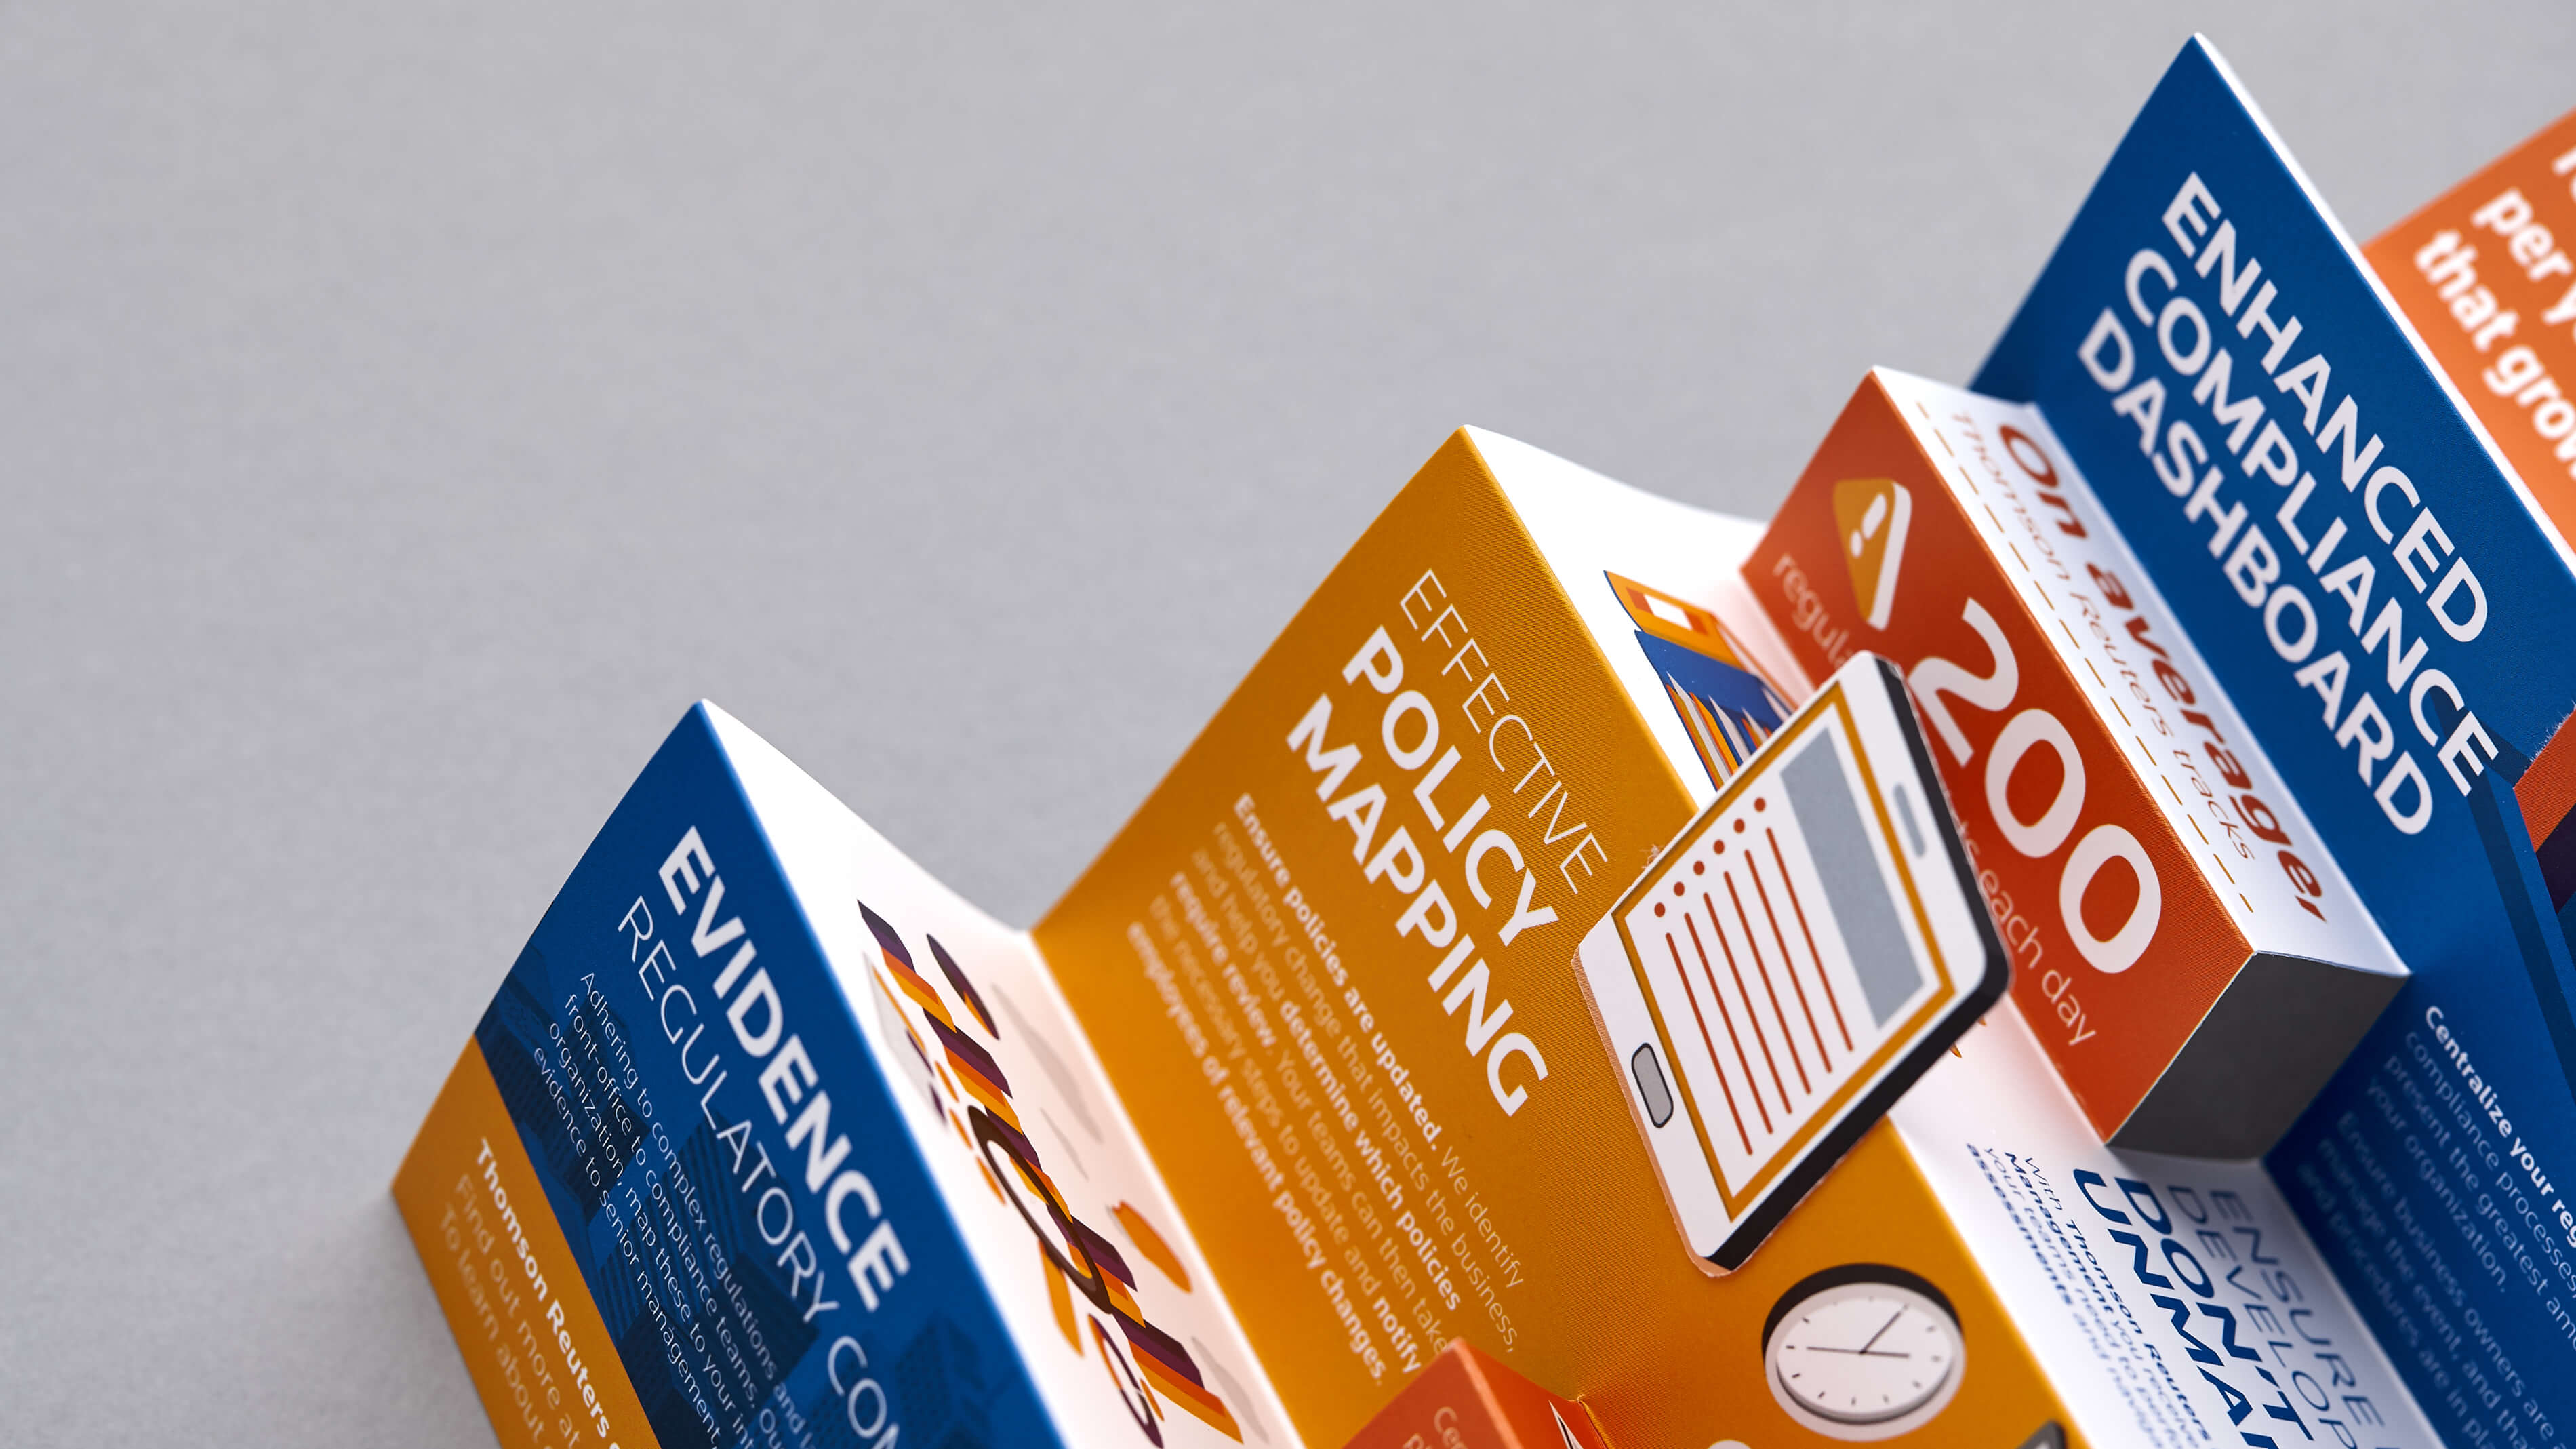 Targeted marketing collateral that's persuasive and visually engaging.